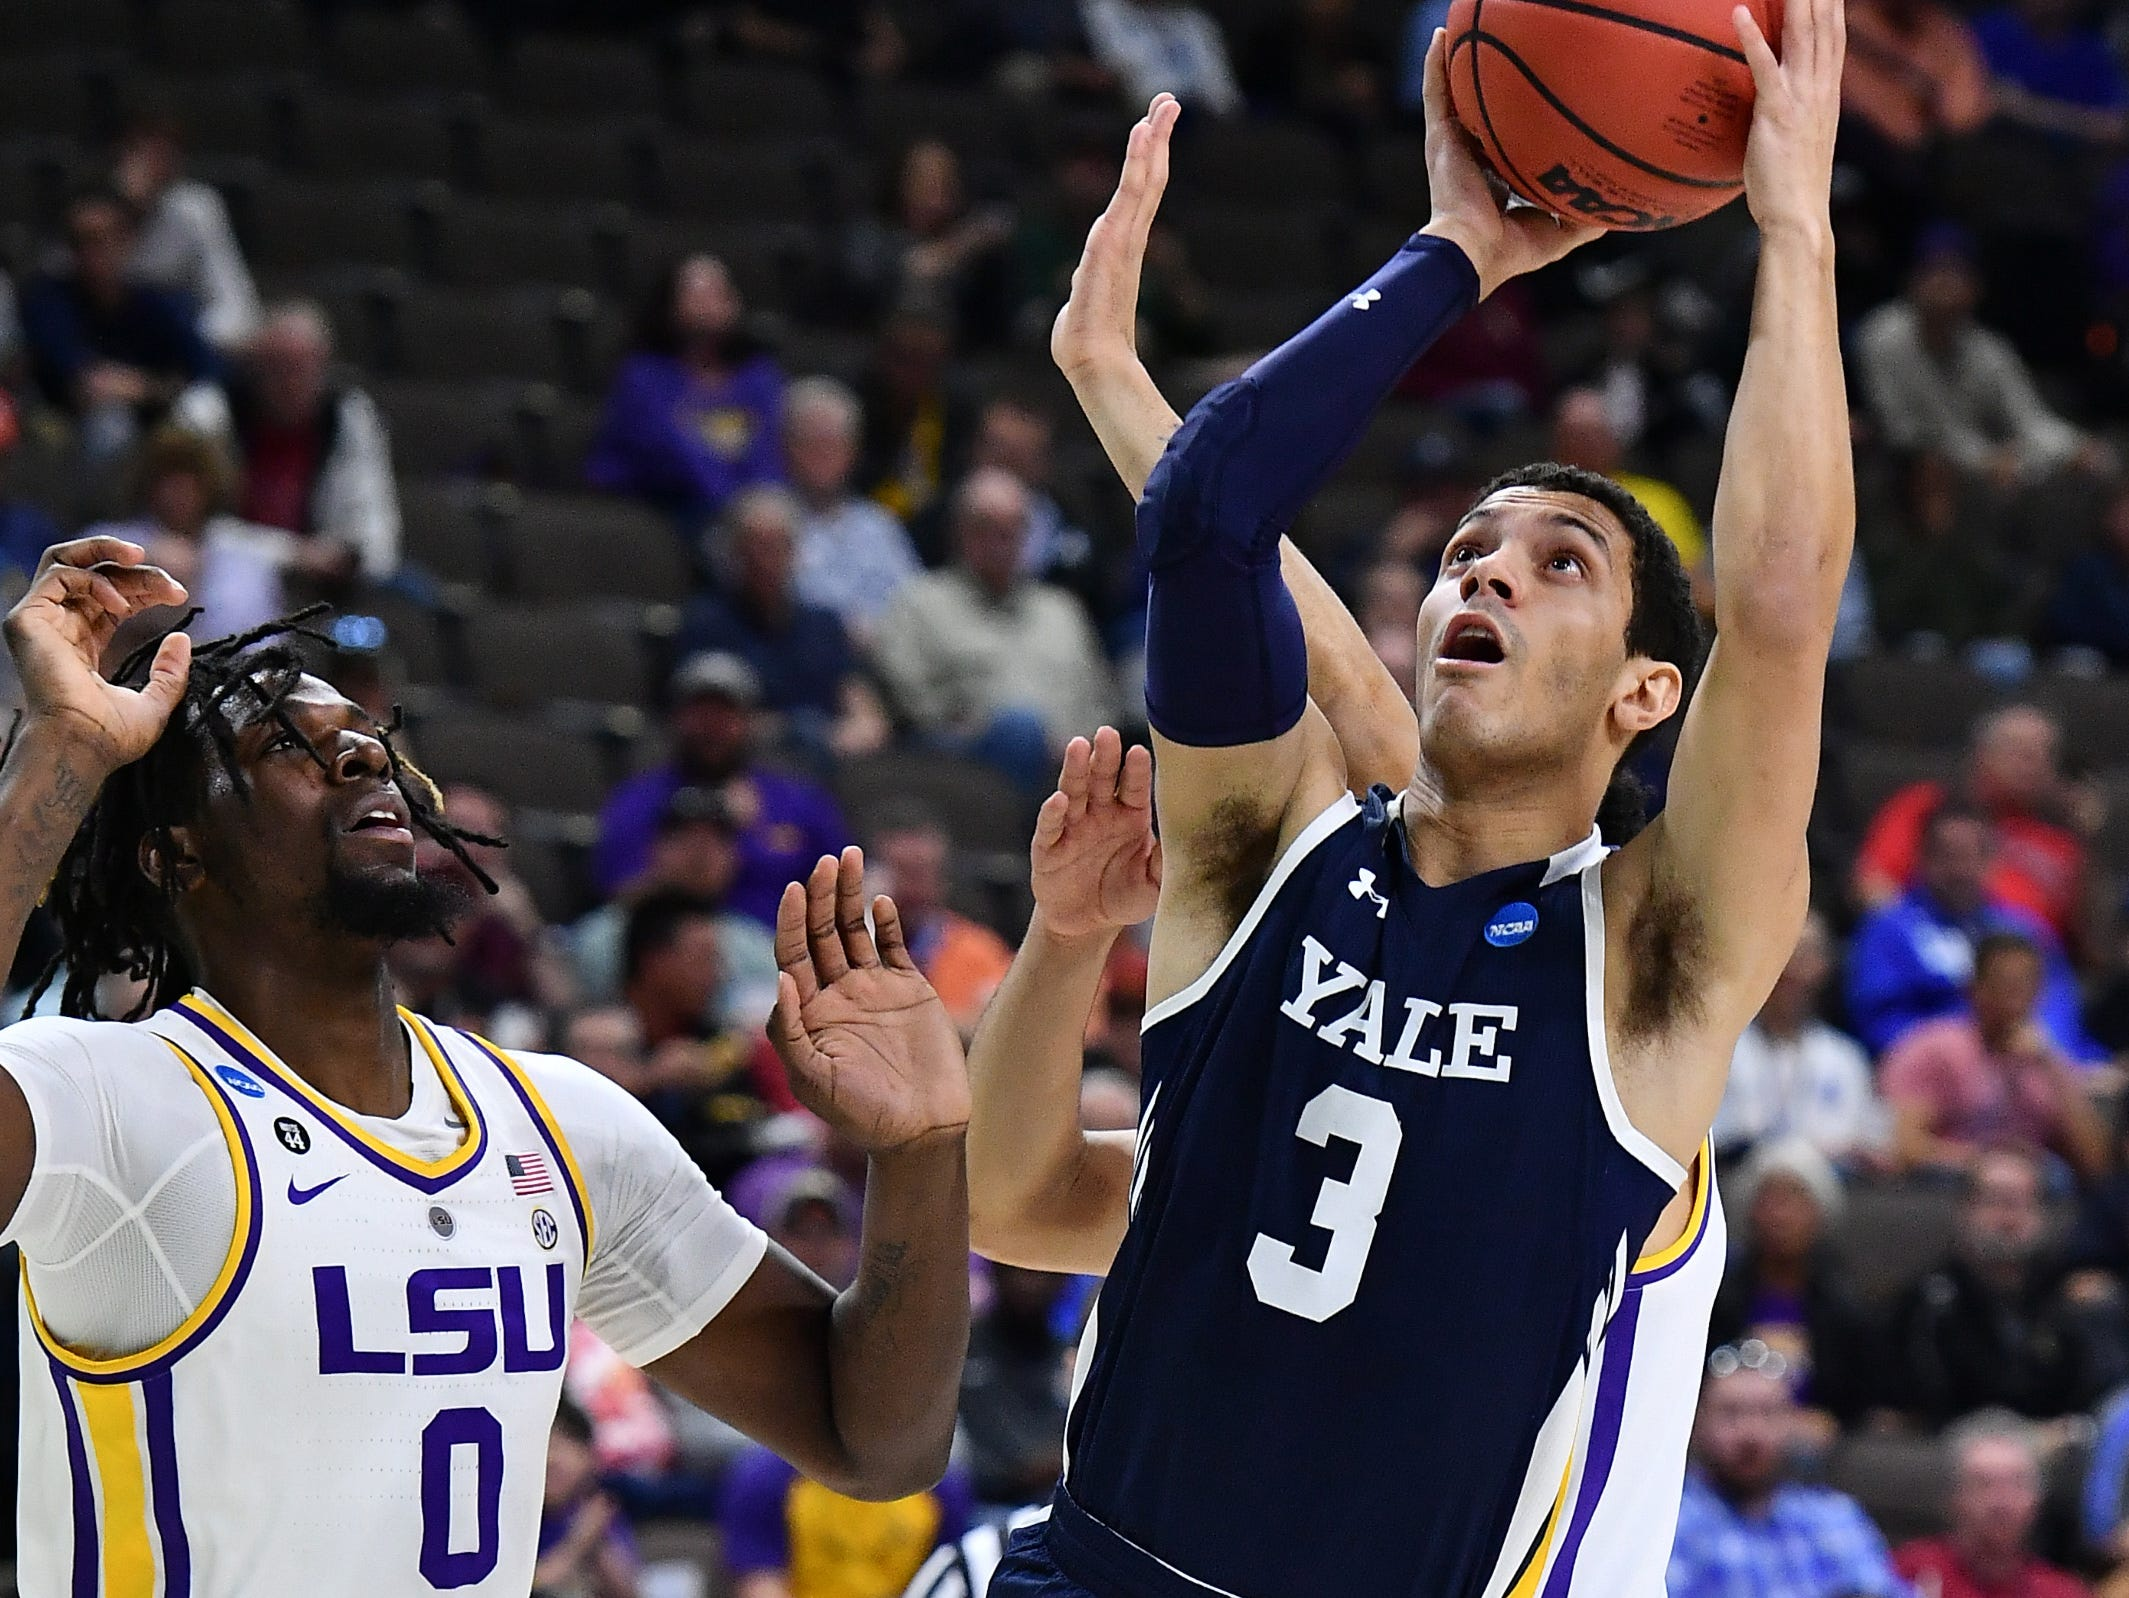 Mar 21, 2019; Jacksonville, FL, USA; Yale Bulldogs guard Alex Copeland (3) shoots against LSU Tigers forward Naz Reid (0) and guard Skylar Mays (behind Copeland) during the first half in the first round of the 2019 NCAA Tournament at Jacksonville Veterans Memorial Arena. Mandatory Credit: John David Mercer-USA TODAY Sports